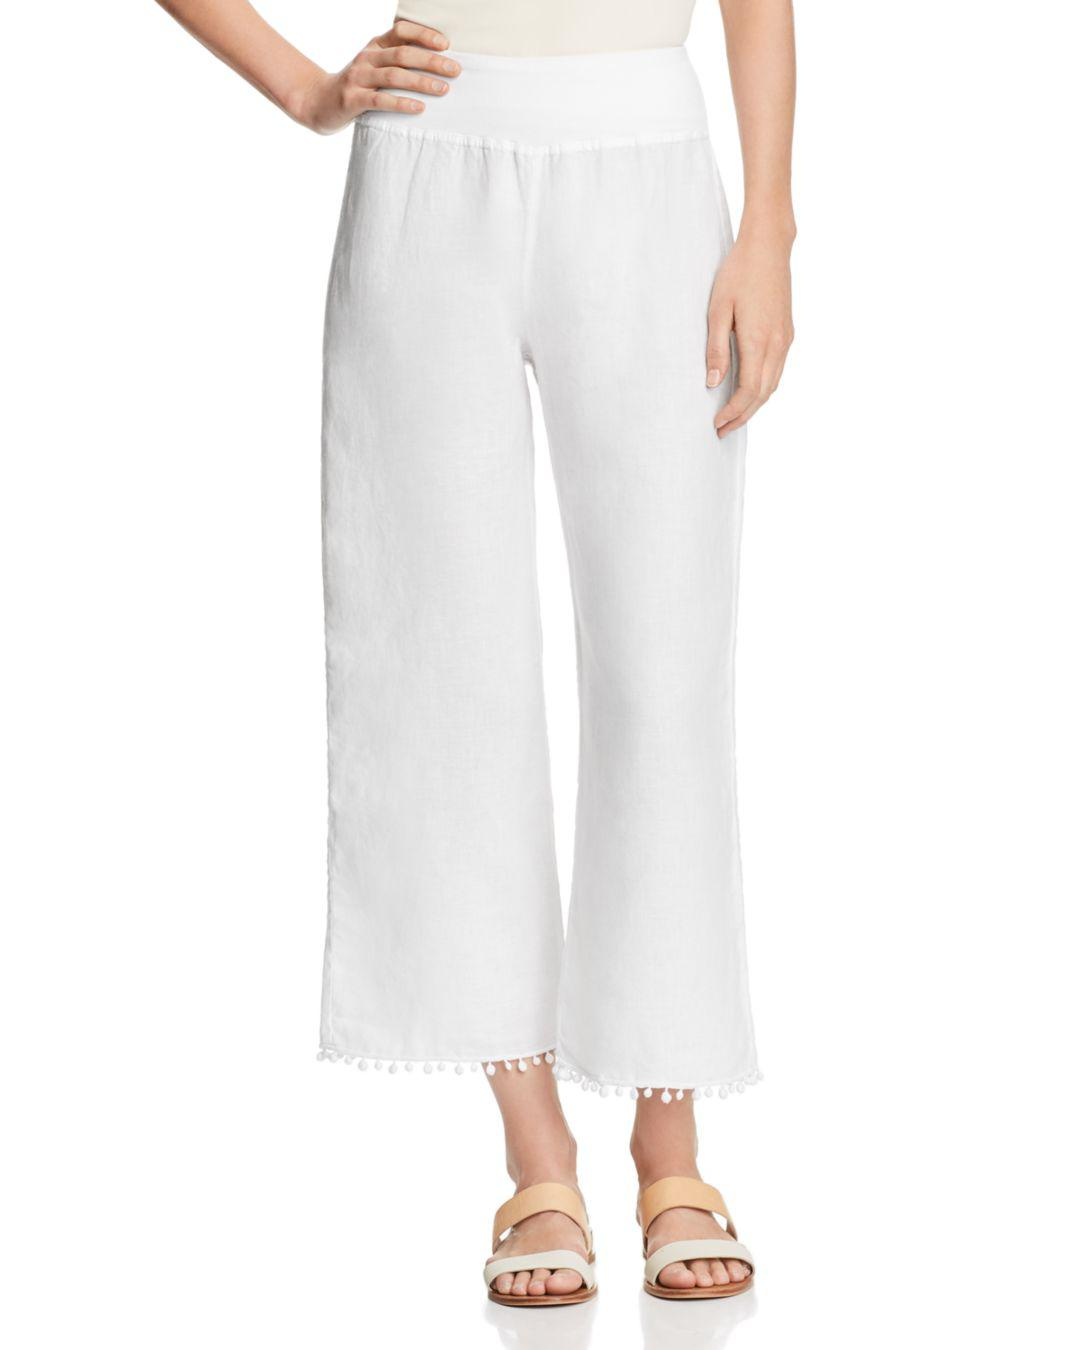 dbf45dab64 Three Dots Linen Pom-pom Trimmed Cropped Pants in White - Lyst